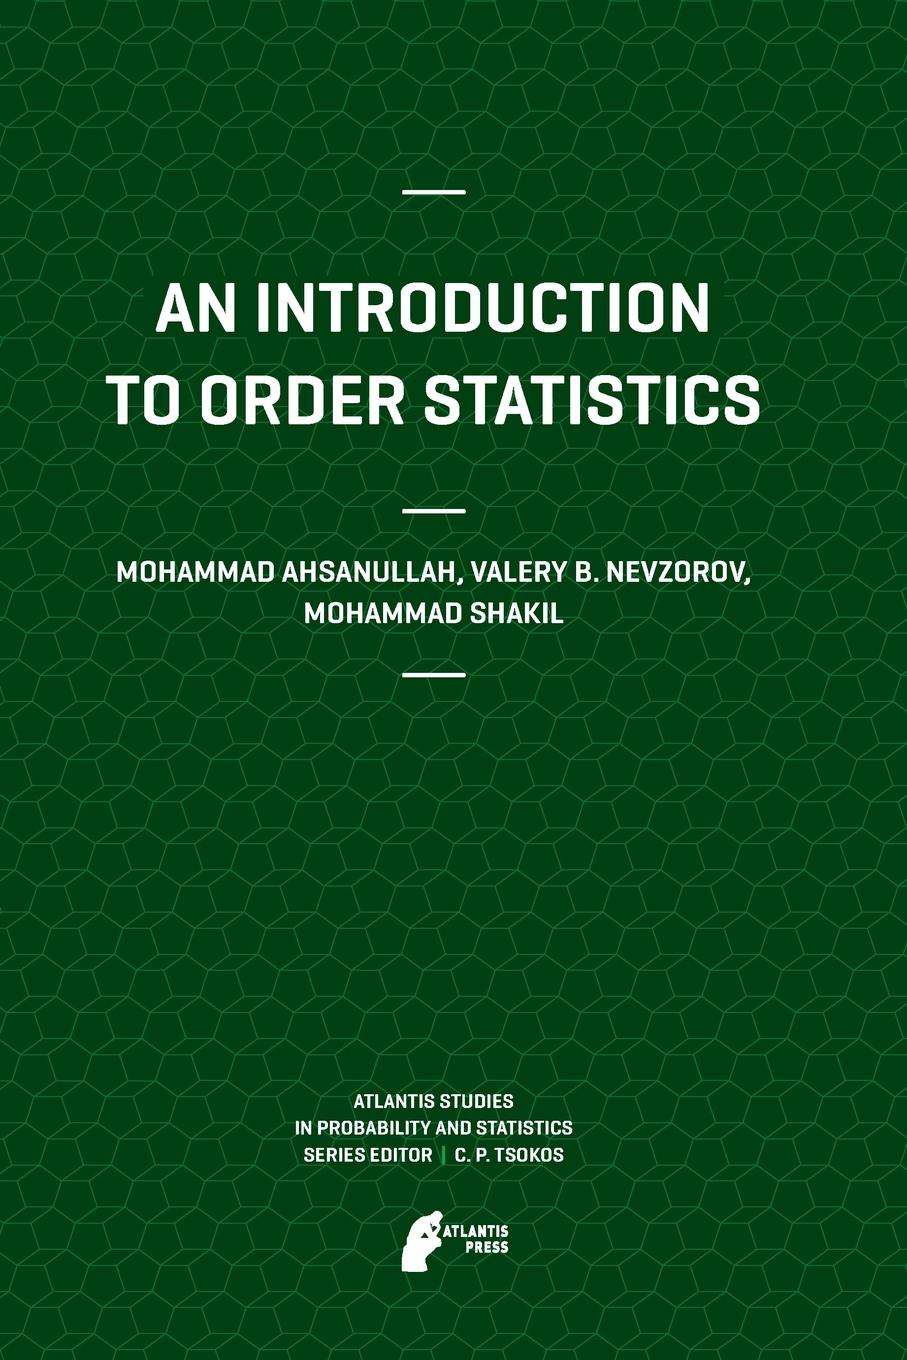 Mohammad Ahsanullah, Valery B Nevzorov, Mohammad Shakil An Introduction to Order Statistics michael crawley j statistics an introduction using r